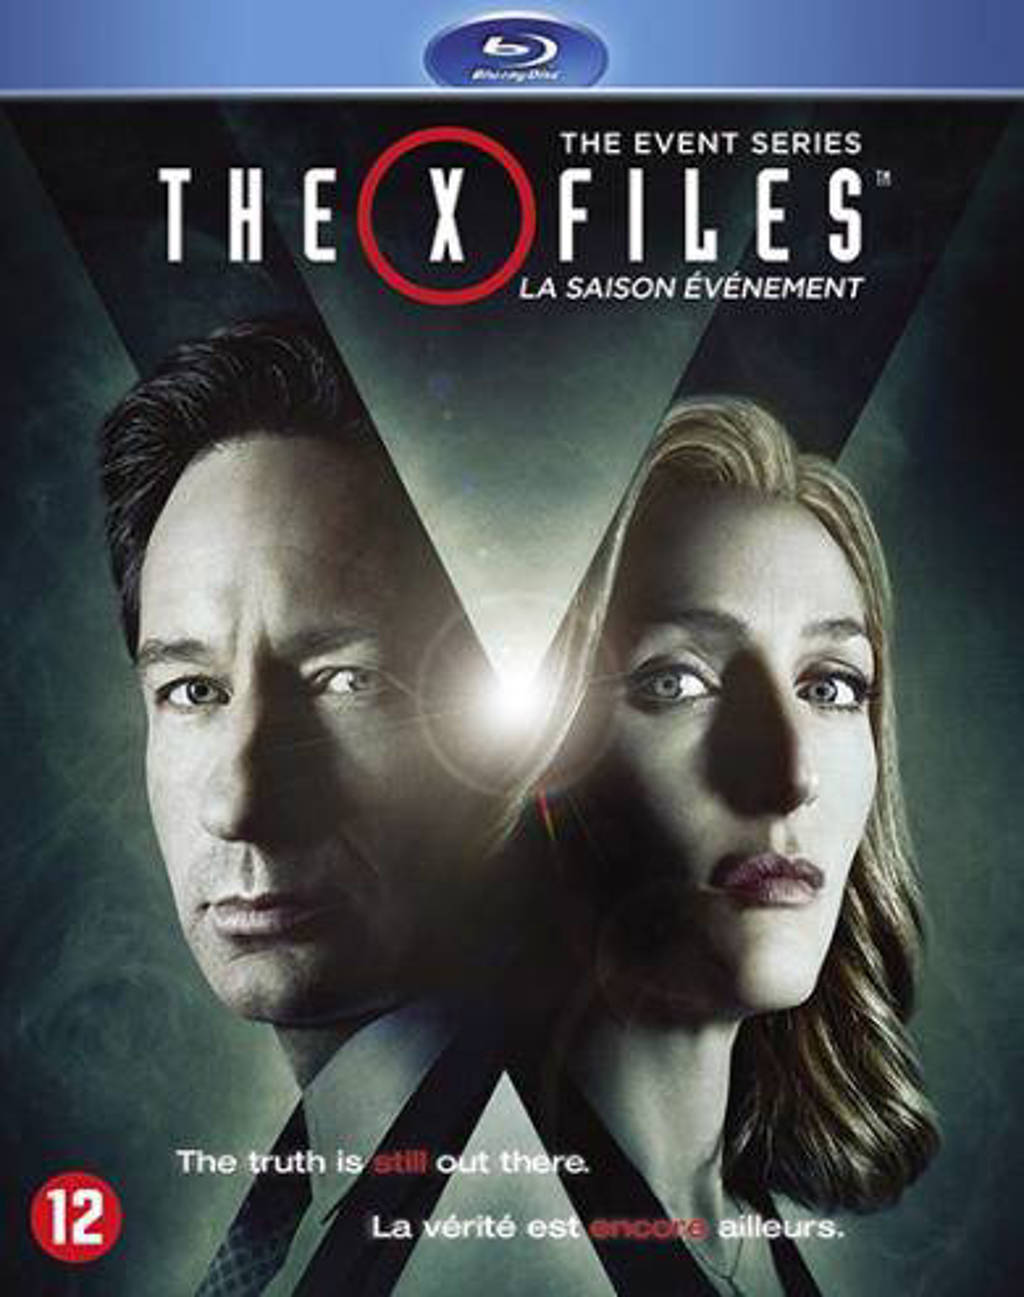 X files - The event series (Blu-ray)